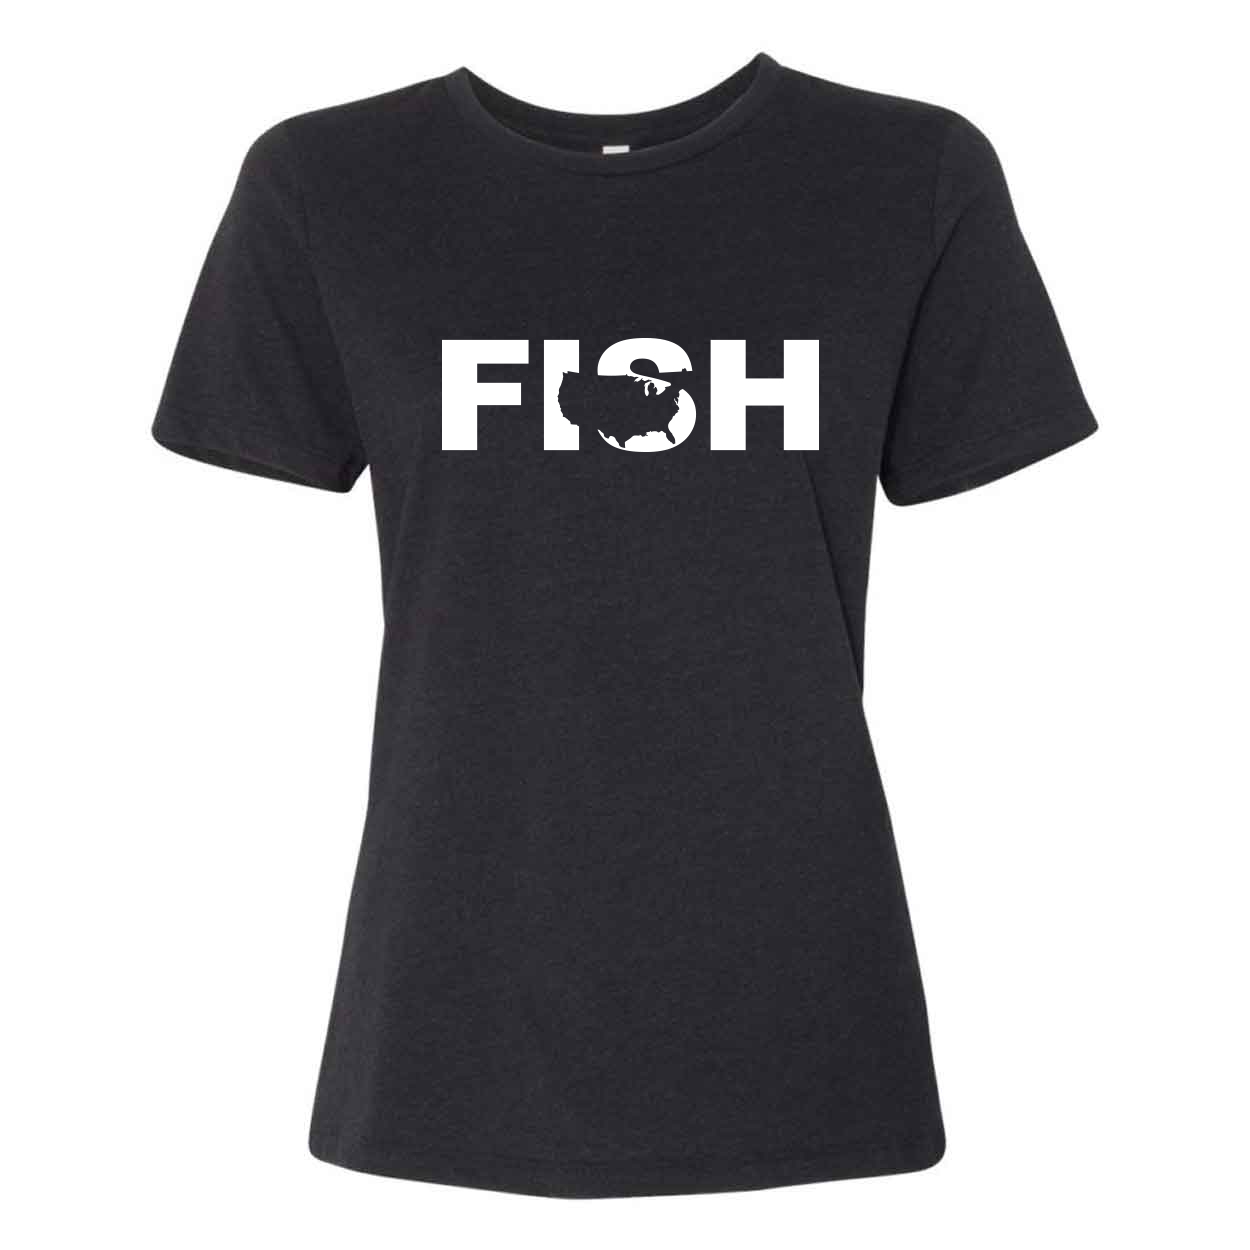 Fish United States Classic Women's Relaxed Jersey T-Shirt Black Heather (White Logo)